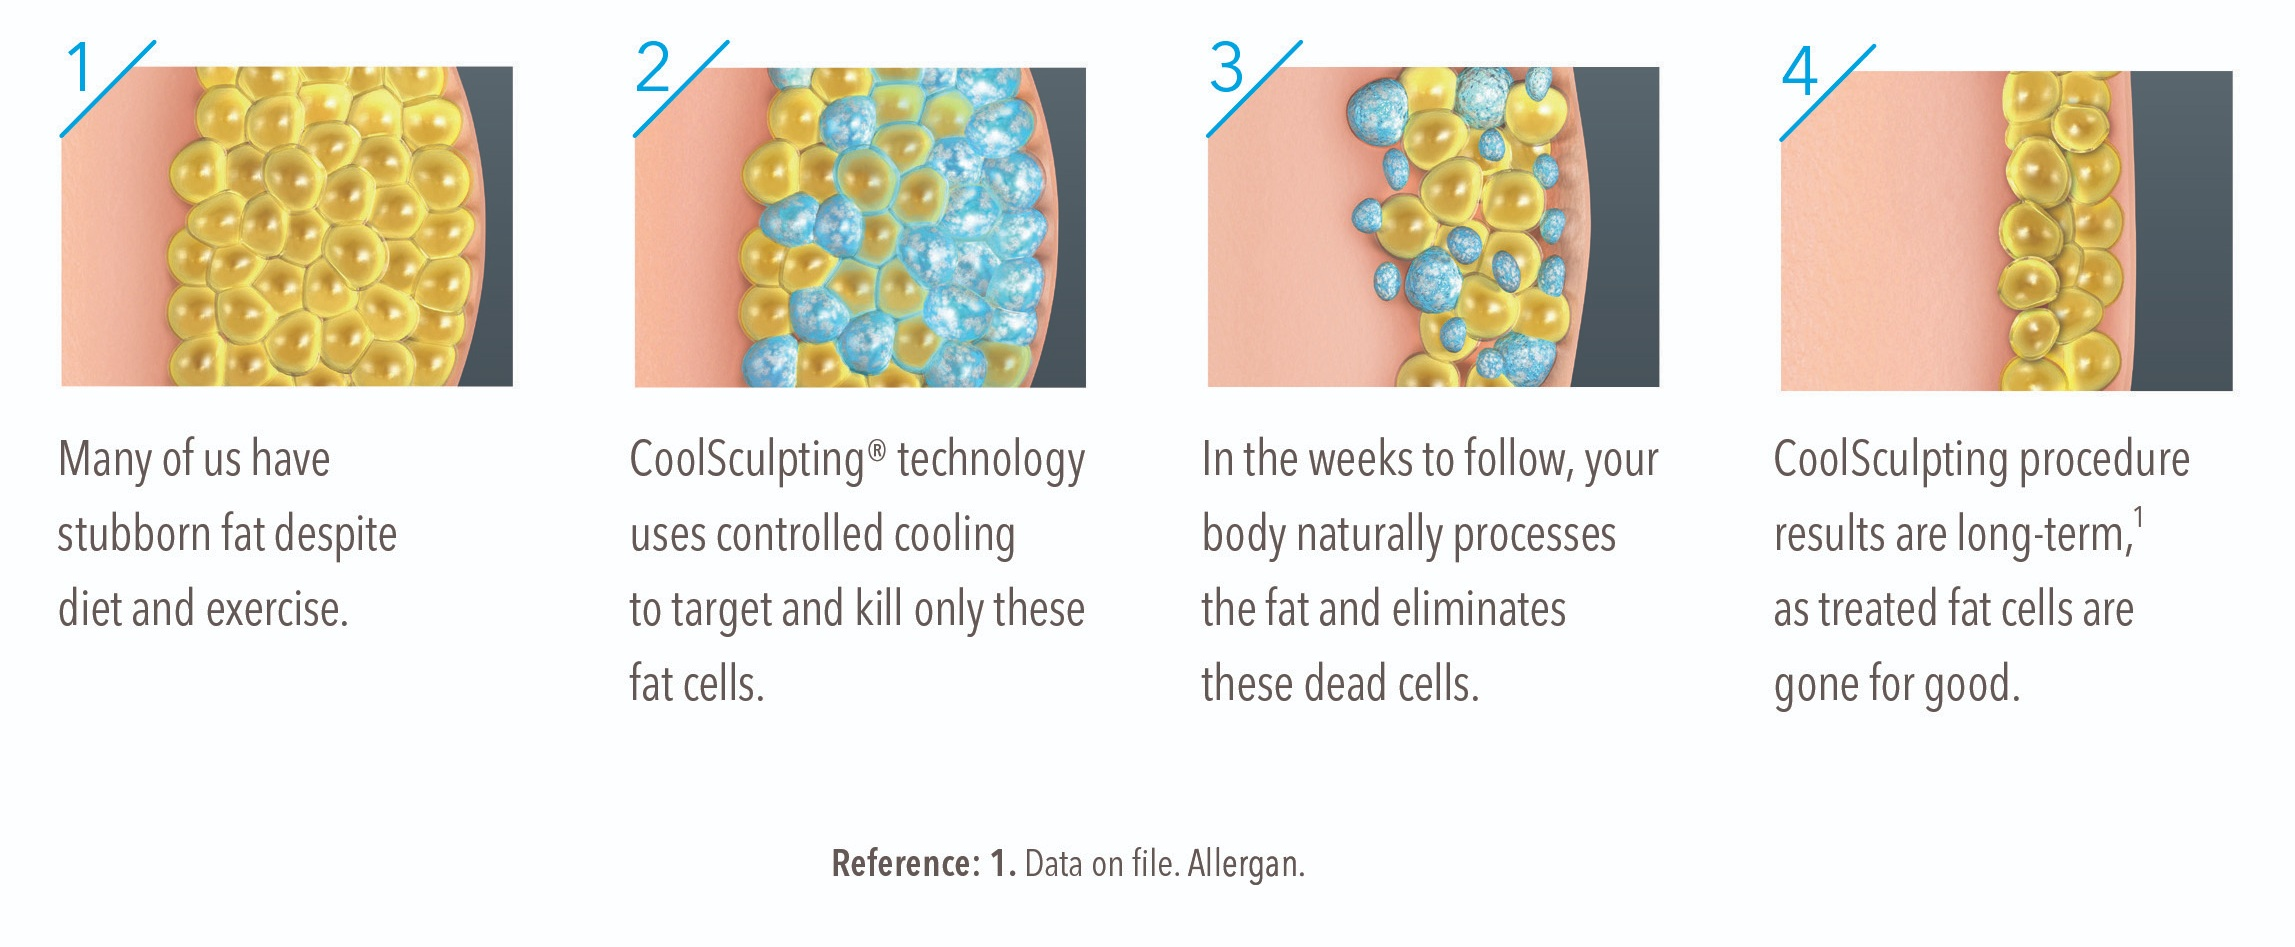 7-Illustration-how-coolsculpting-works-Medium.jpg